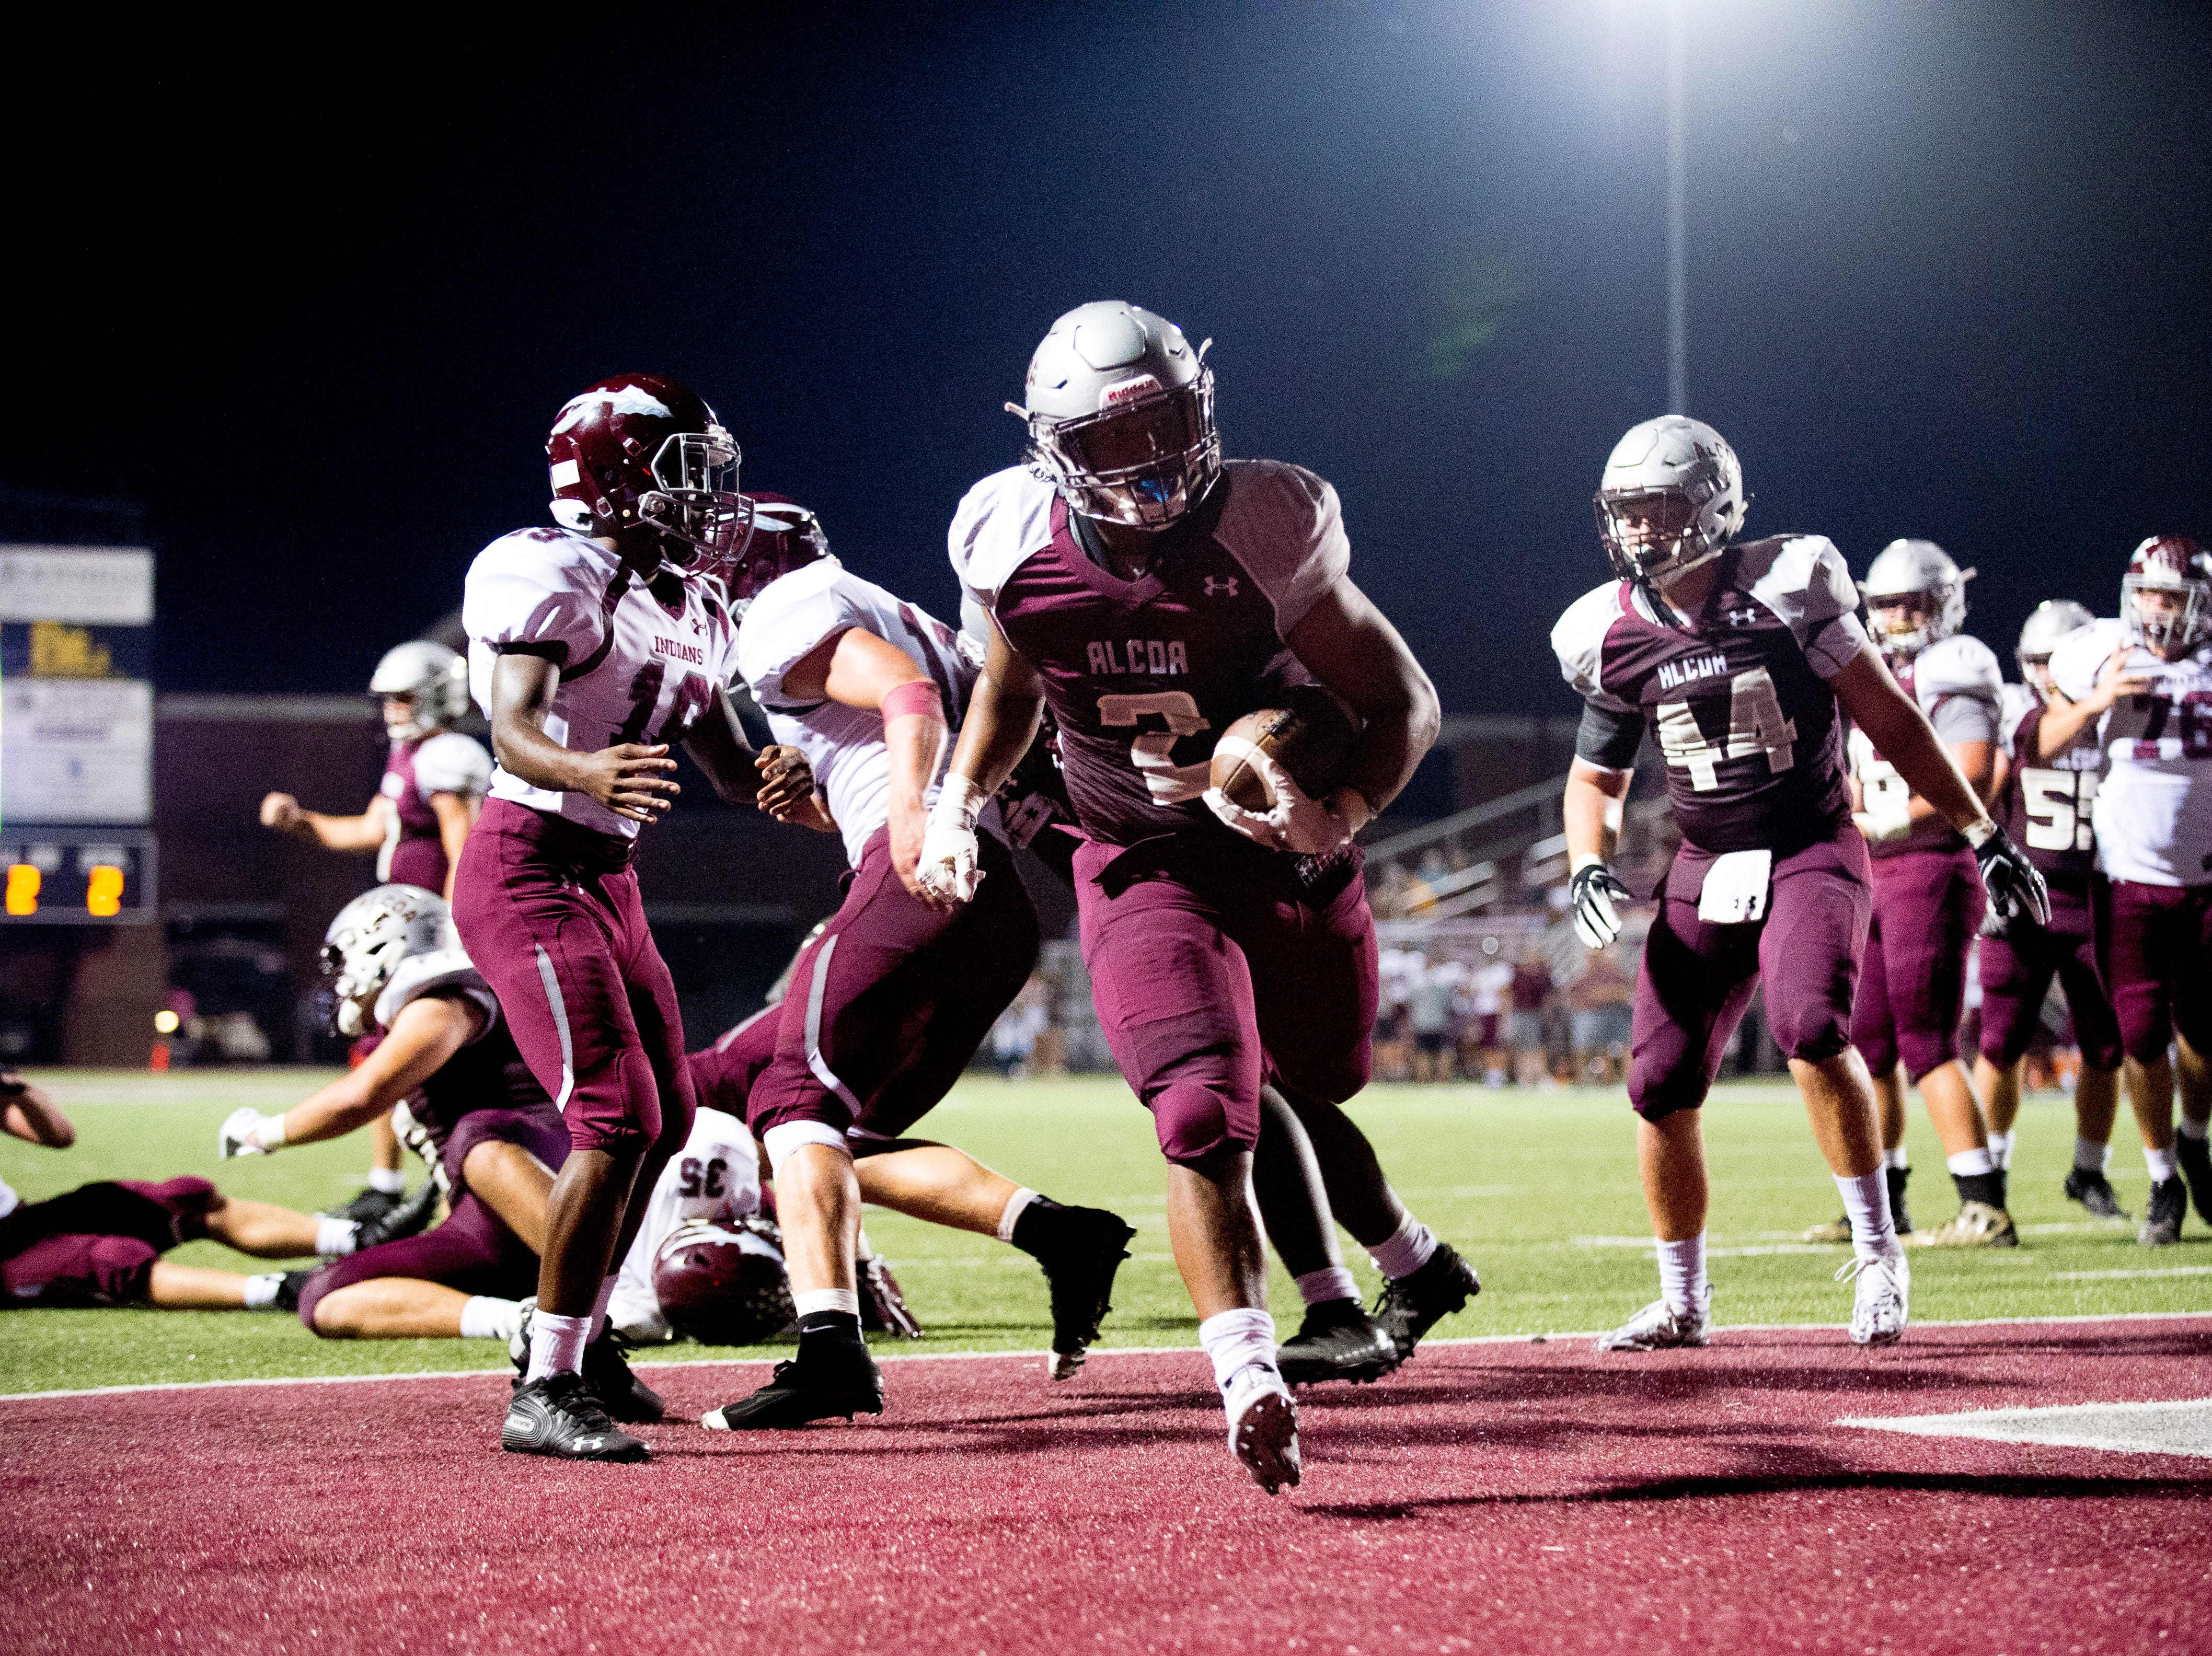 Alcoa's K'Vaughn Tyson (2) scores a touchdown during a game between Alcoa and Dobyns-Bennett at Alcoa High School in Alcoa, Tennessee on Friday, September 21, 2018.